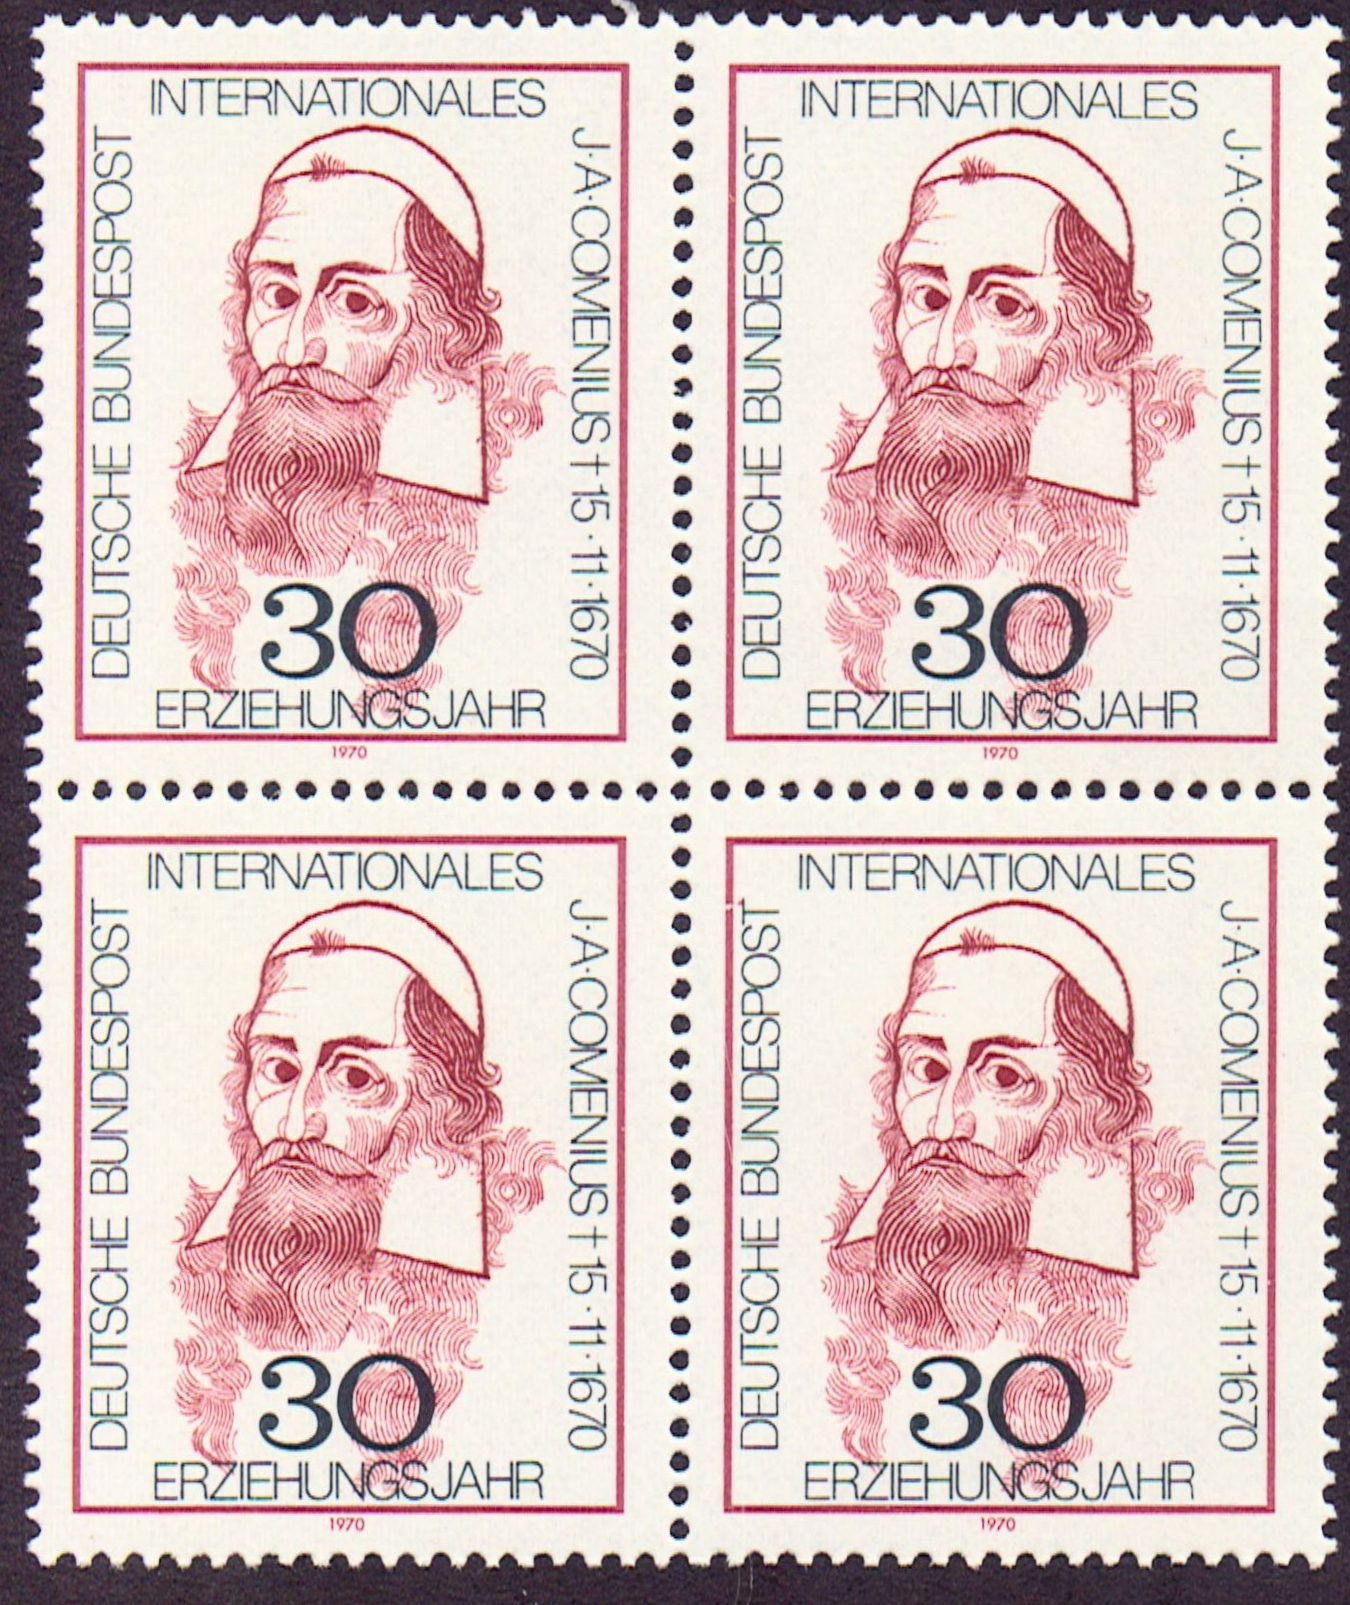 Germany Scott 1050, MNH, Block of 4, BL4, Comenius, 1670